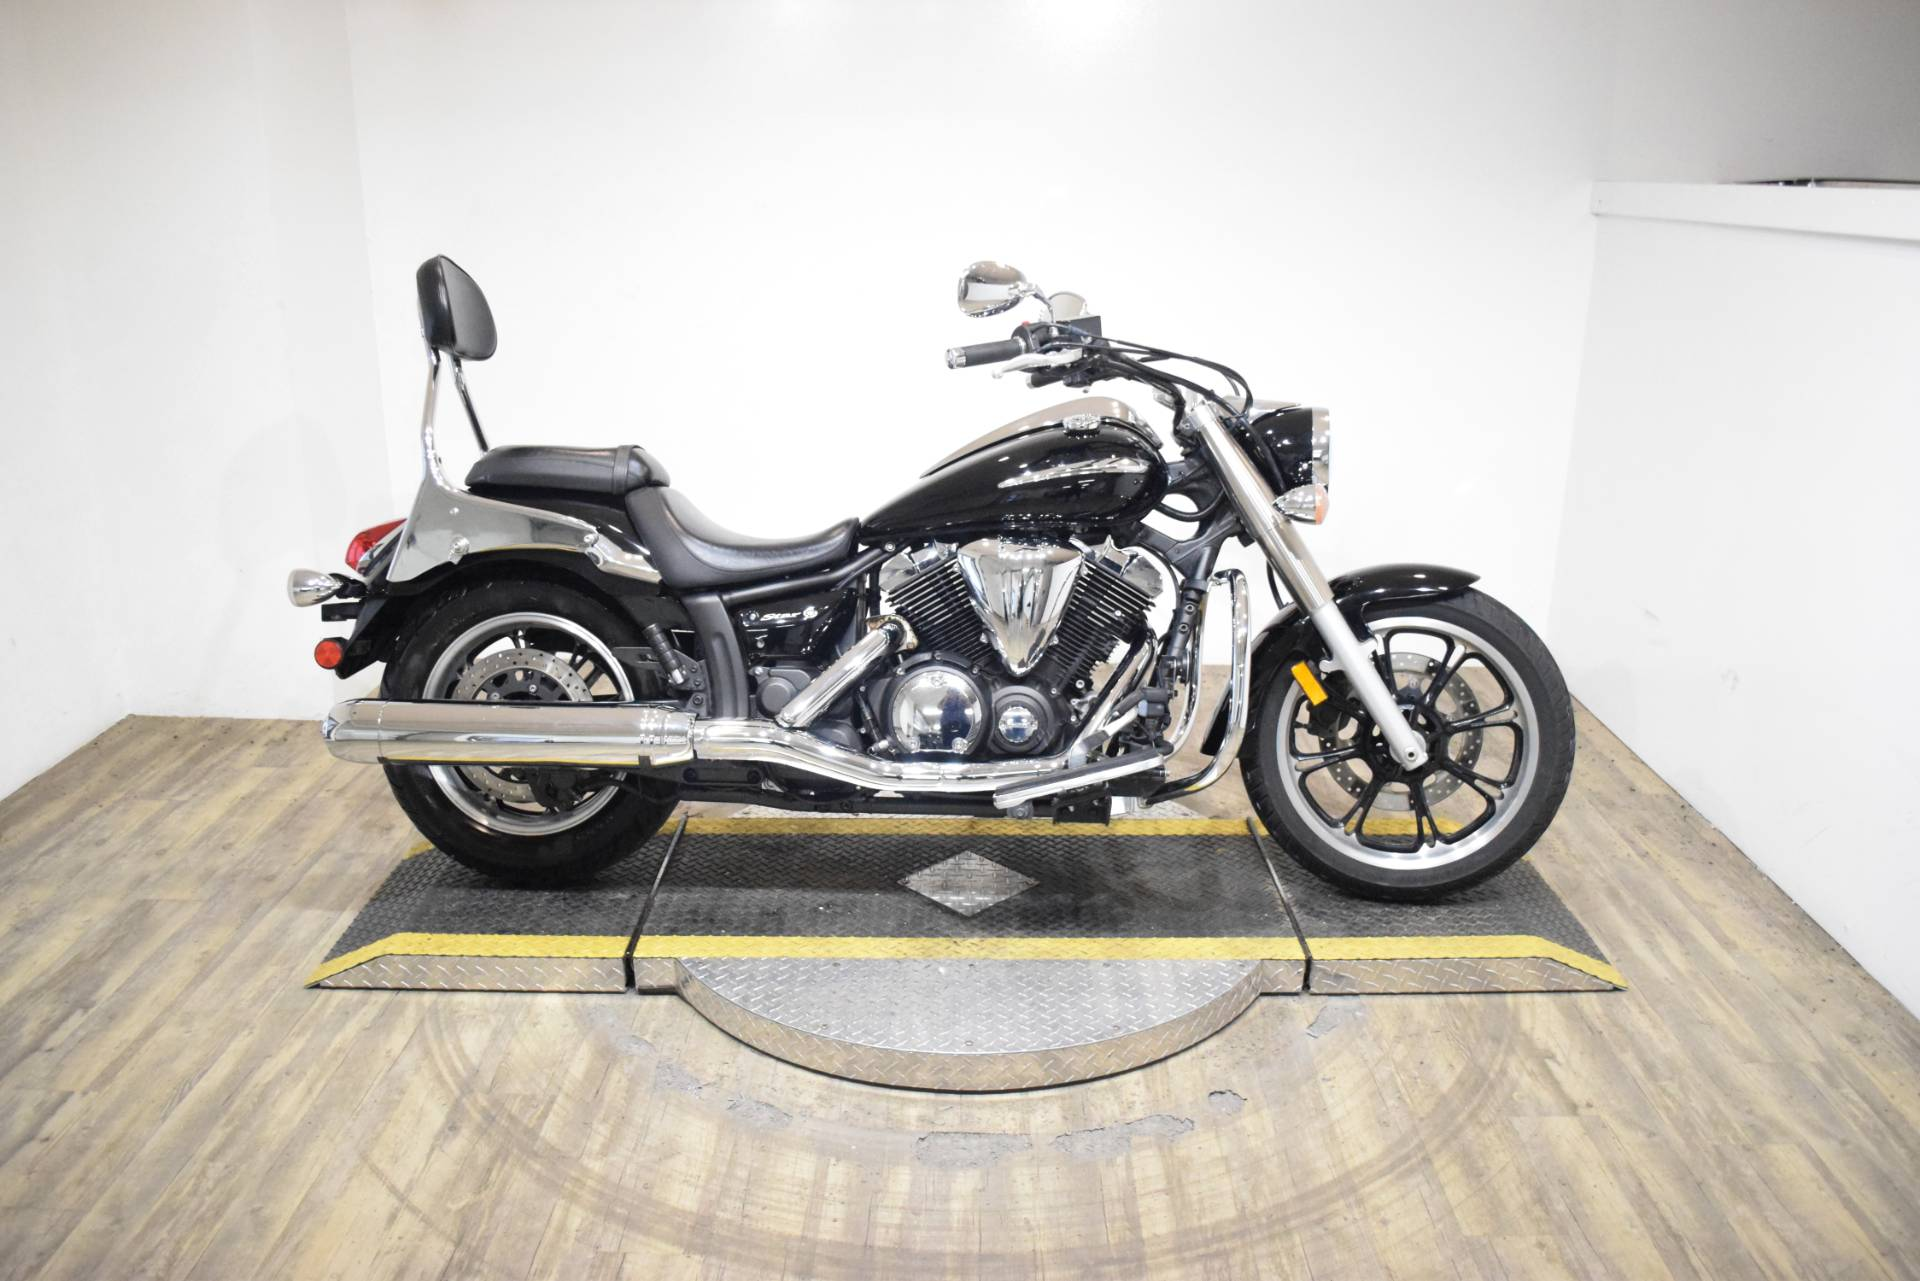 2009 Yamaha V Star 950 in Wauconda, Illinois - Photo 1